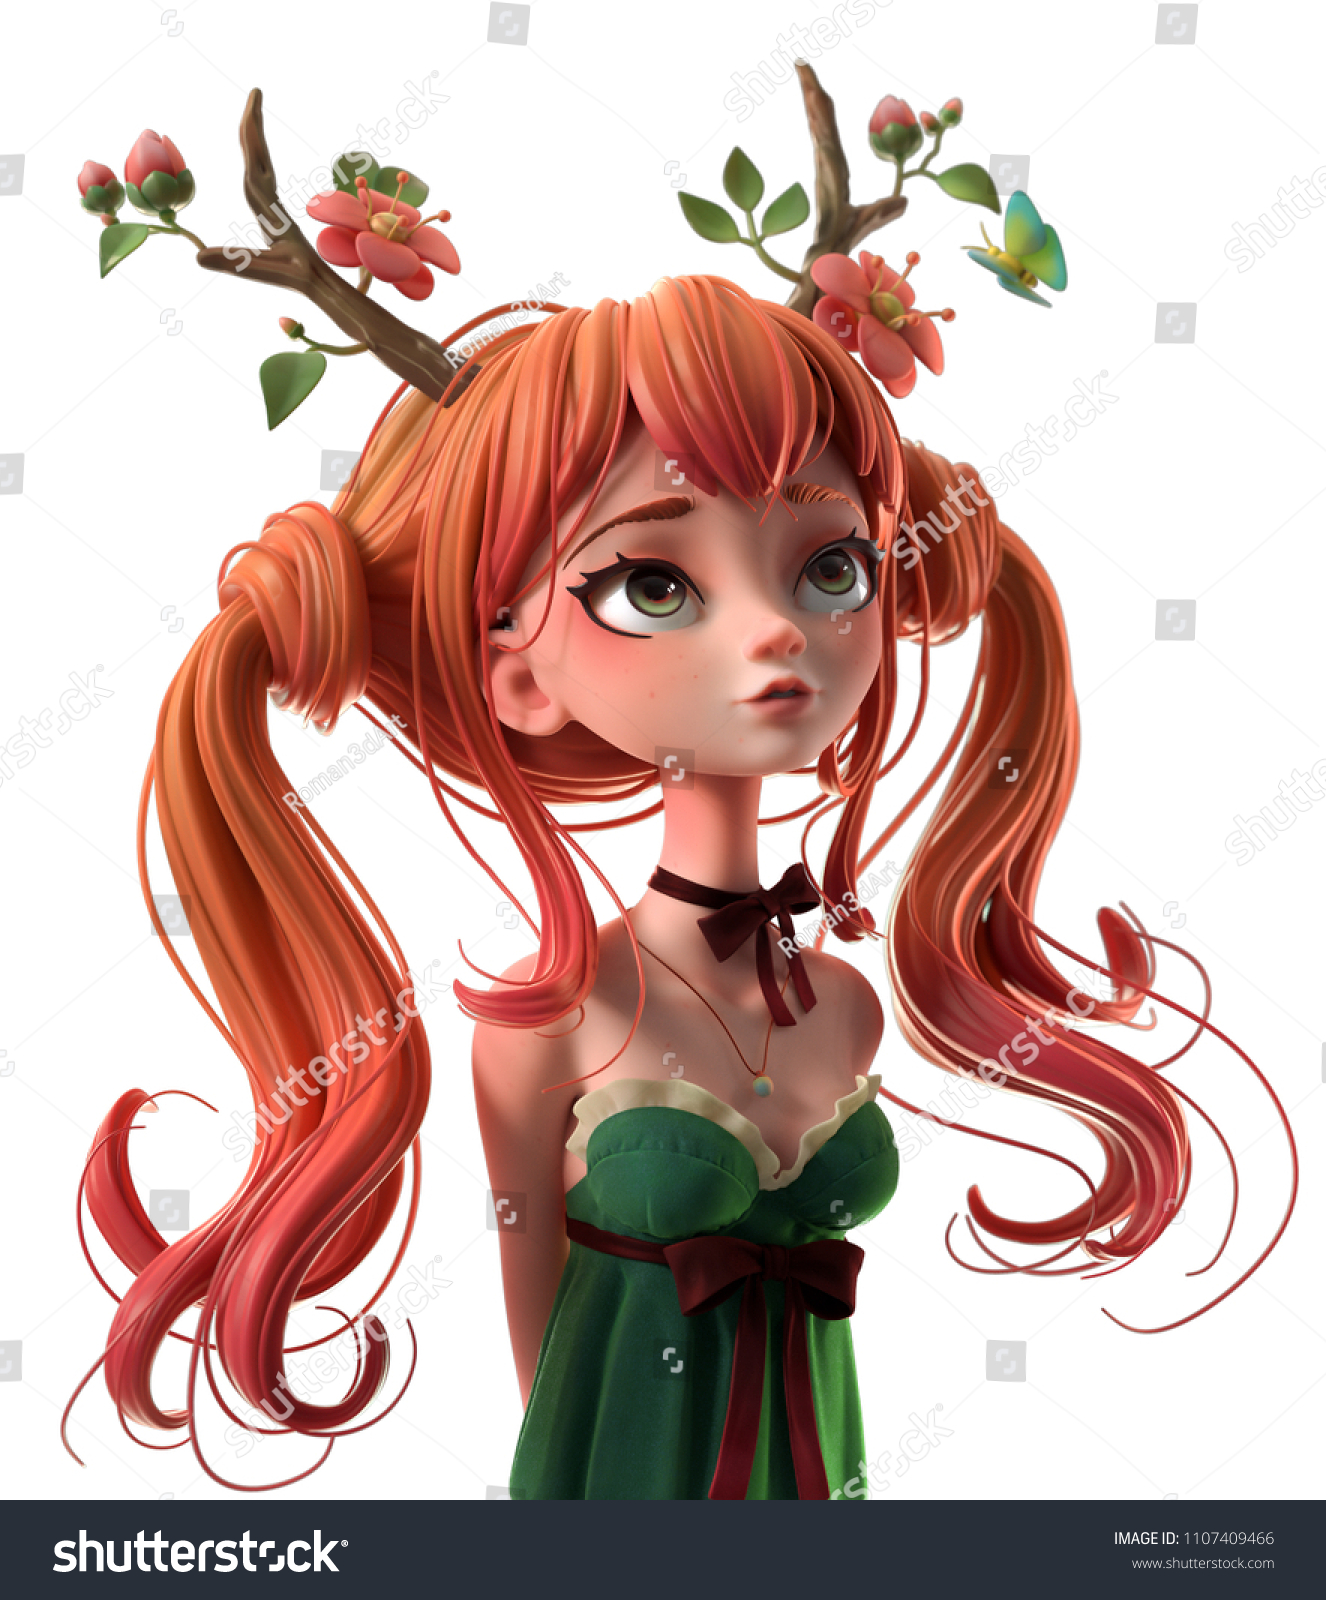 3d cartoon character red haired girl in green dress dreaming woman with two tails